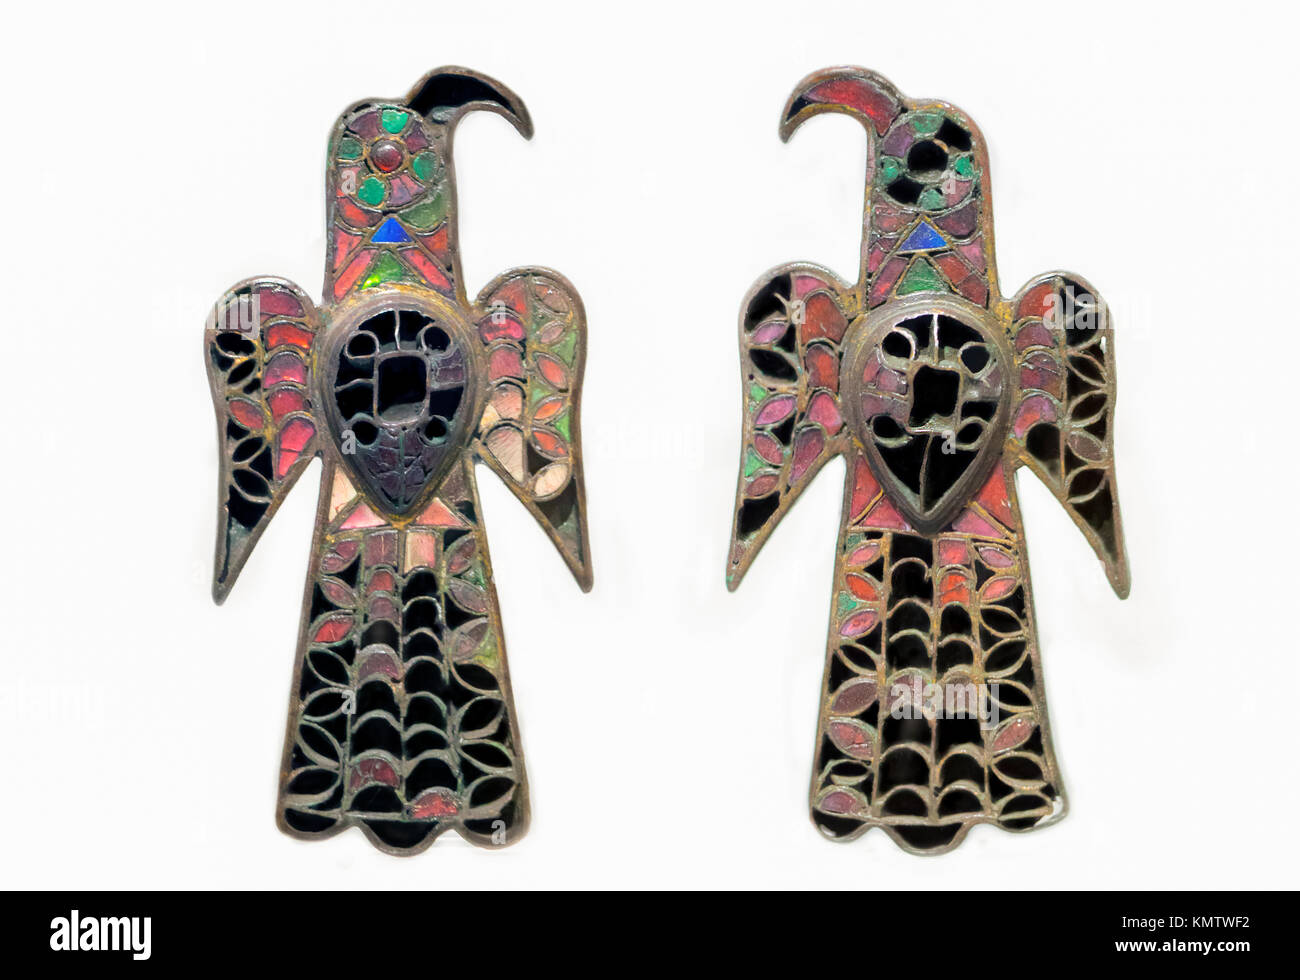 Eagle-shaped brooches belonging to Visigoth Kingdom. Golden Bronze and colorful glass - Stock Image